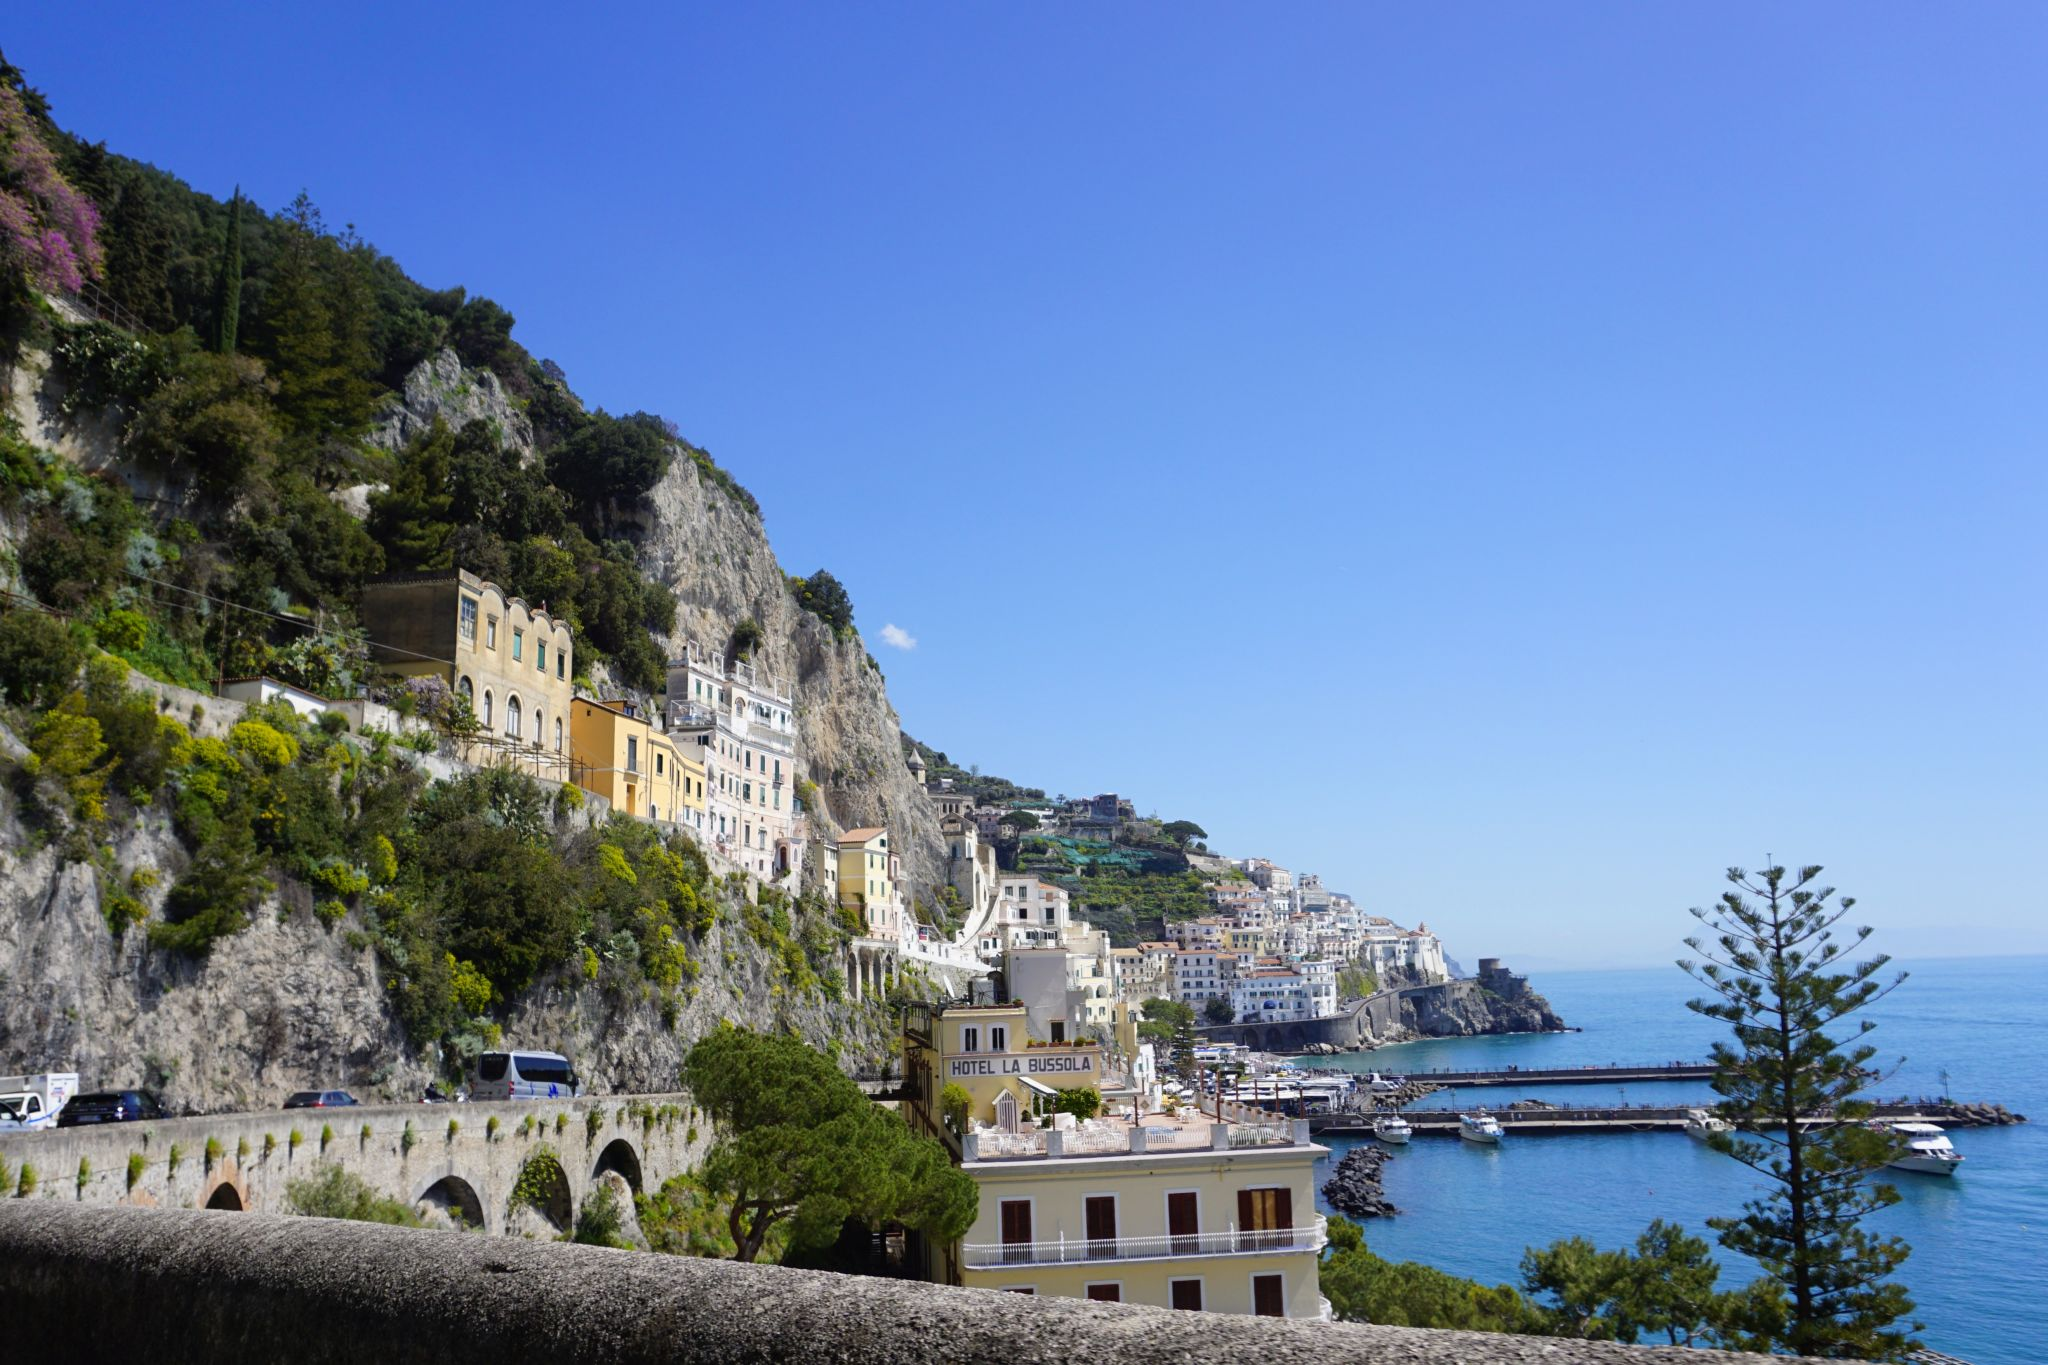 The Amalfi Drive is beautiful